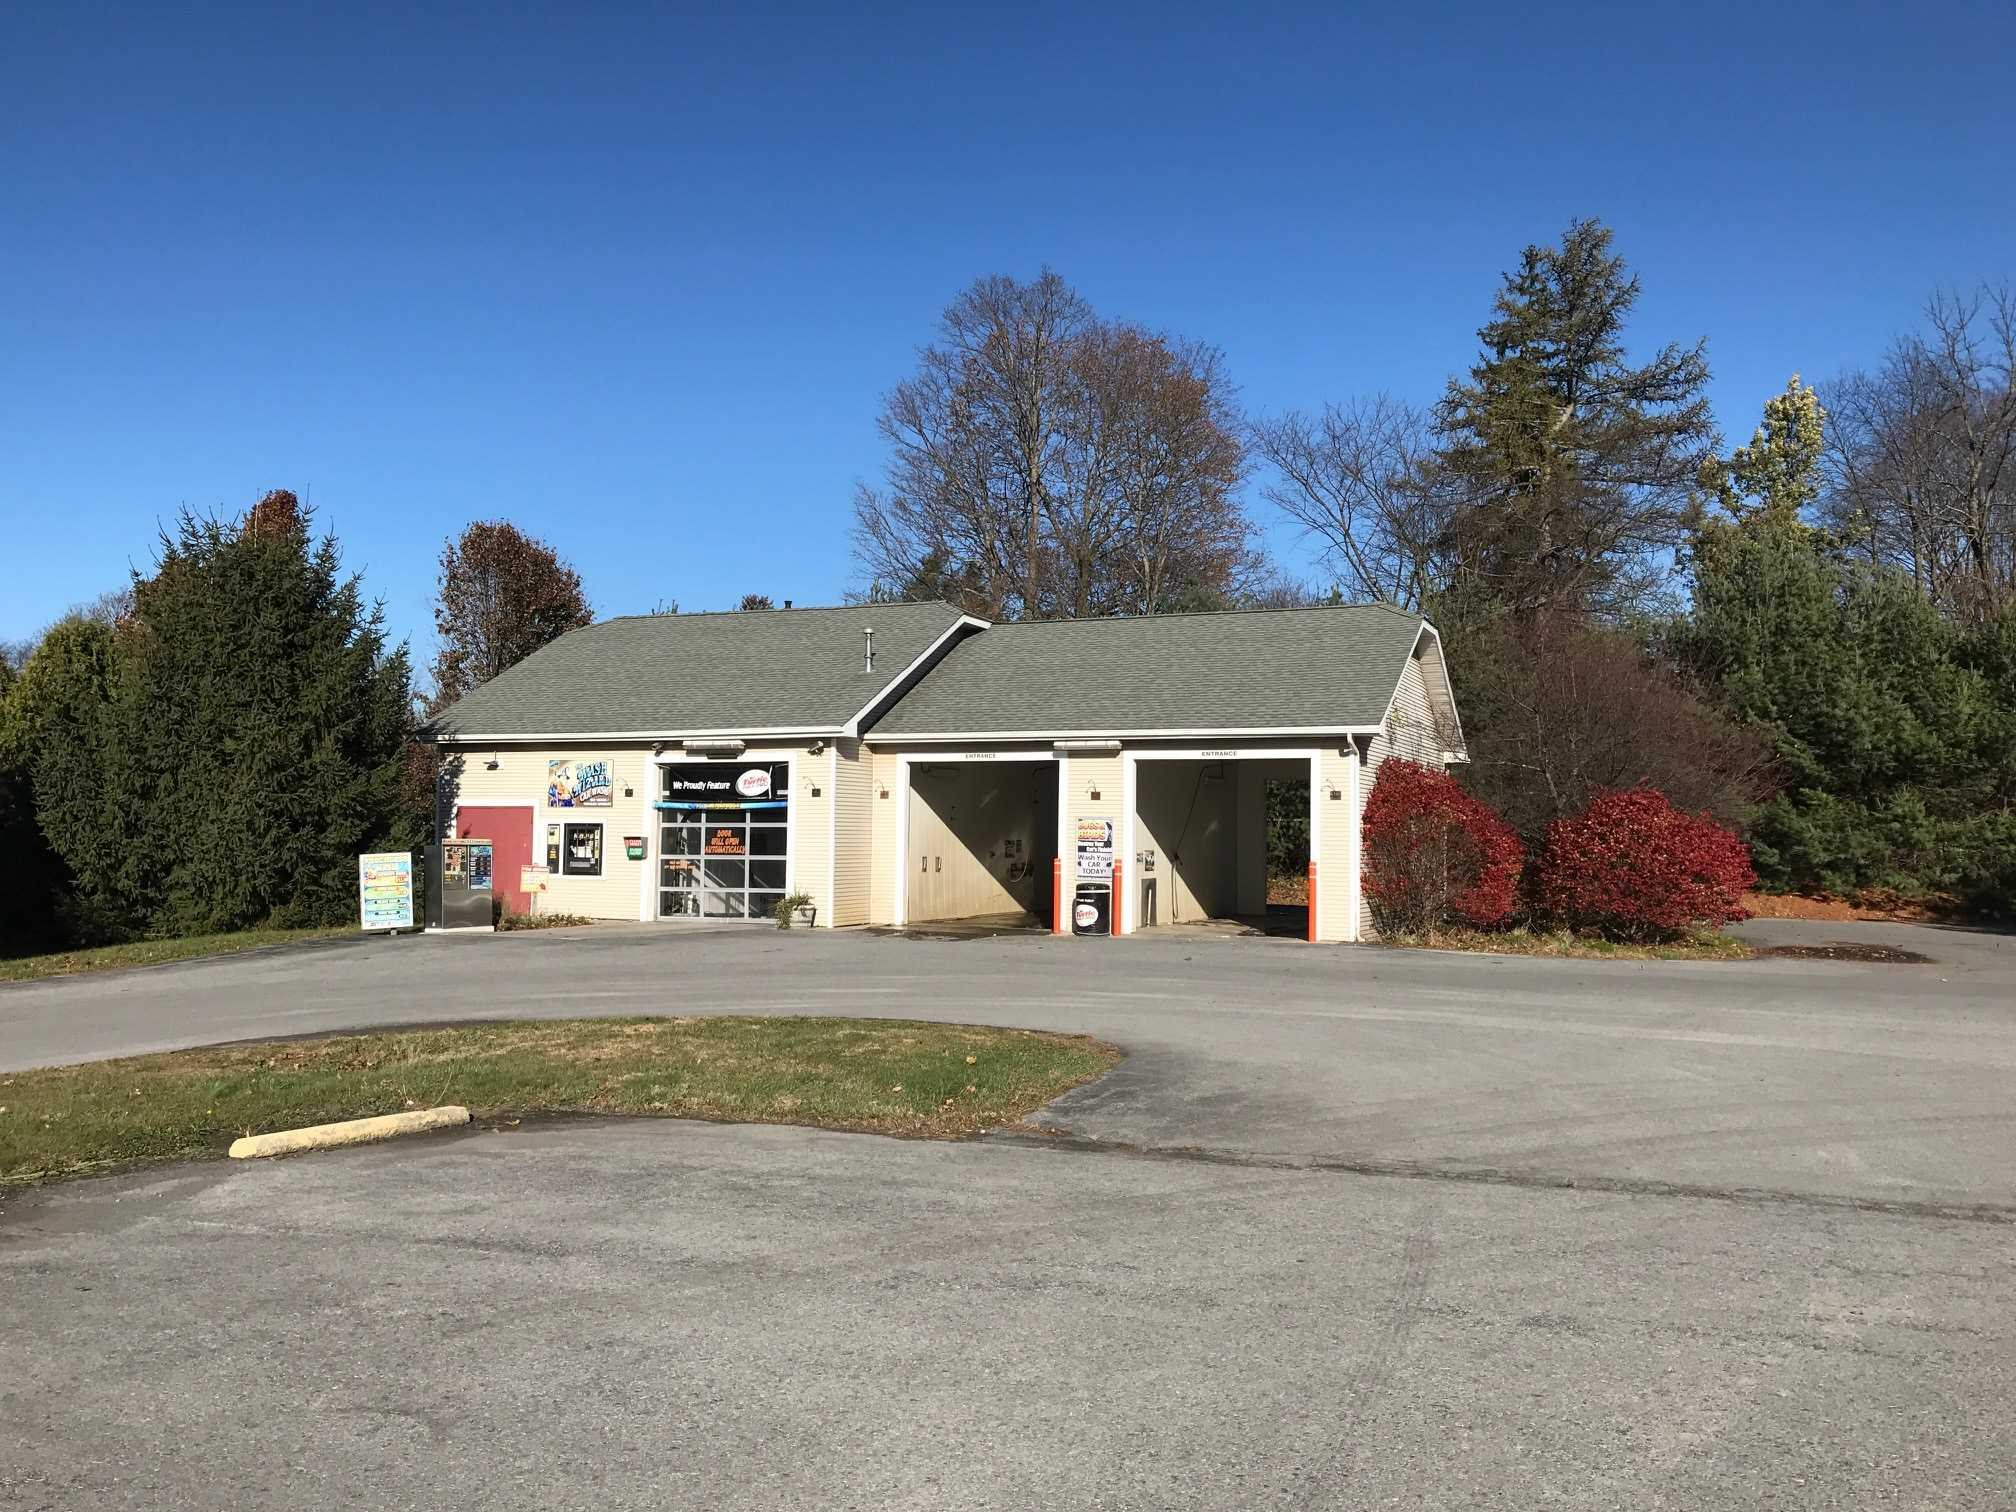 Additional photo for property listing at 15 PILCH DRIVE 15 PILCH DRIVE Pine Plains, New York 12567 United States